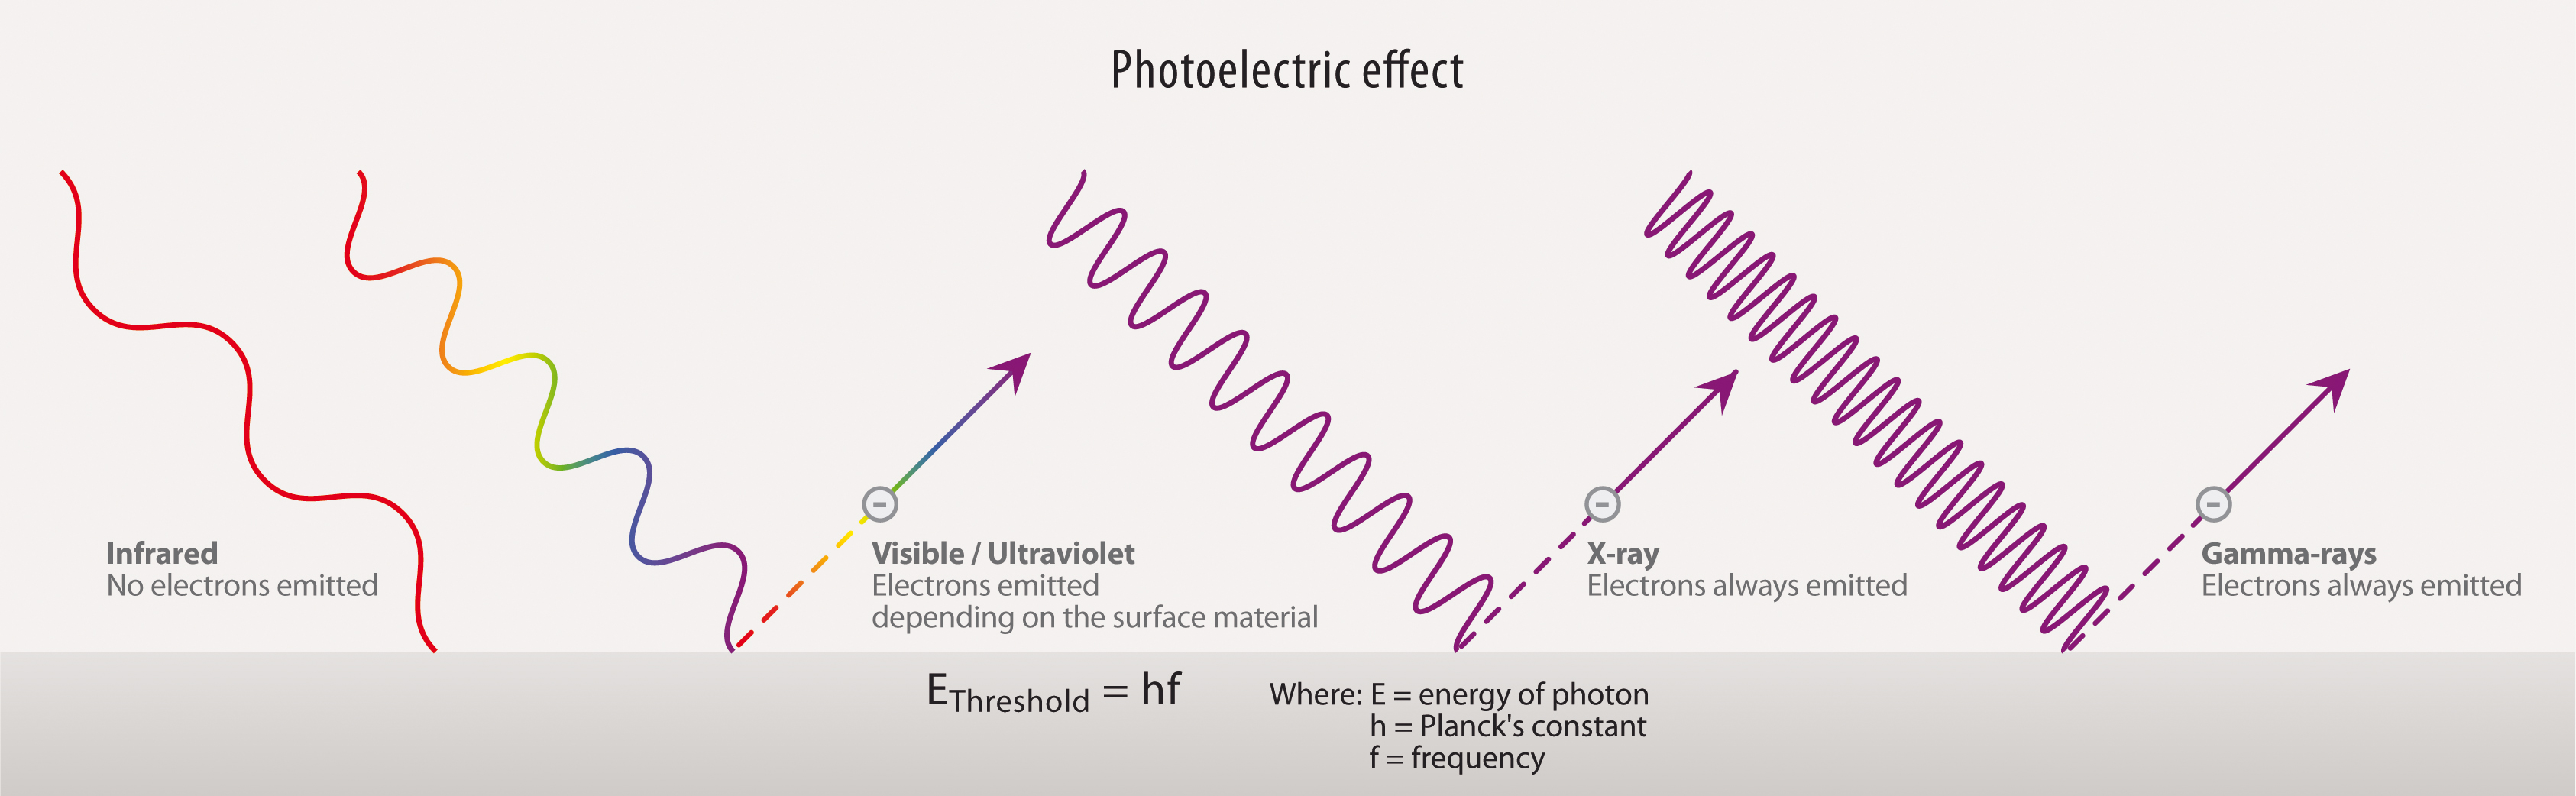 http://sci.esa.int/education/50380-the-photoelectric-effect/